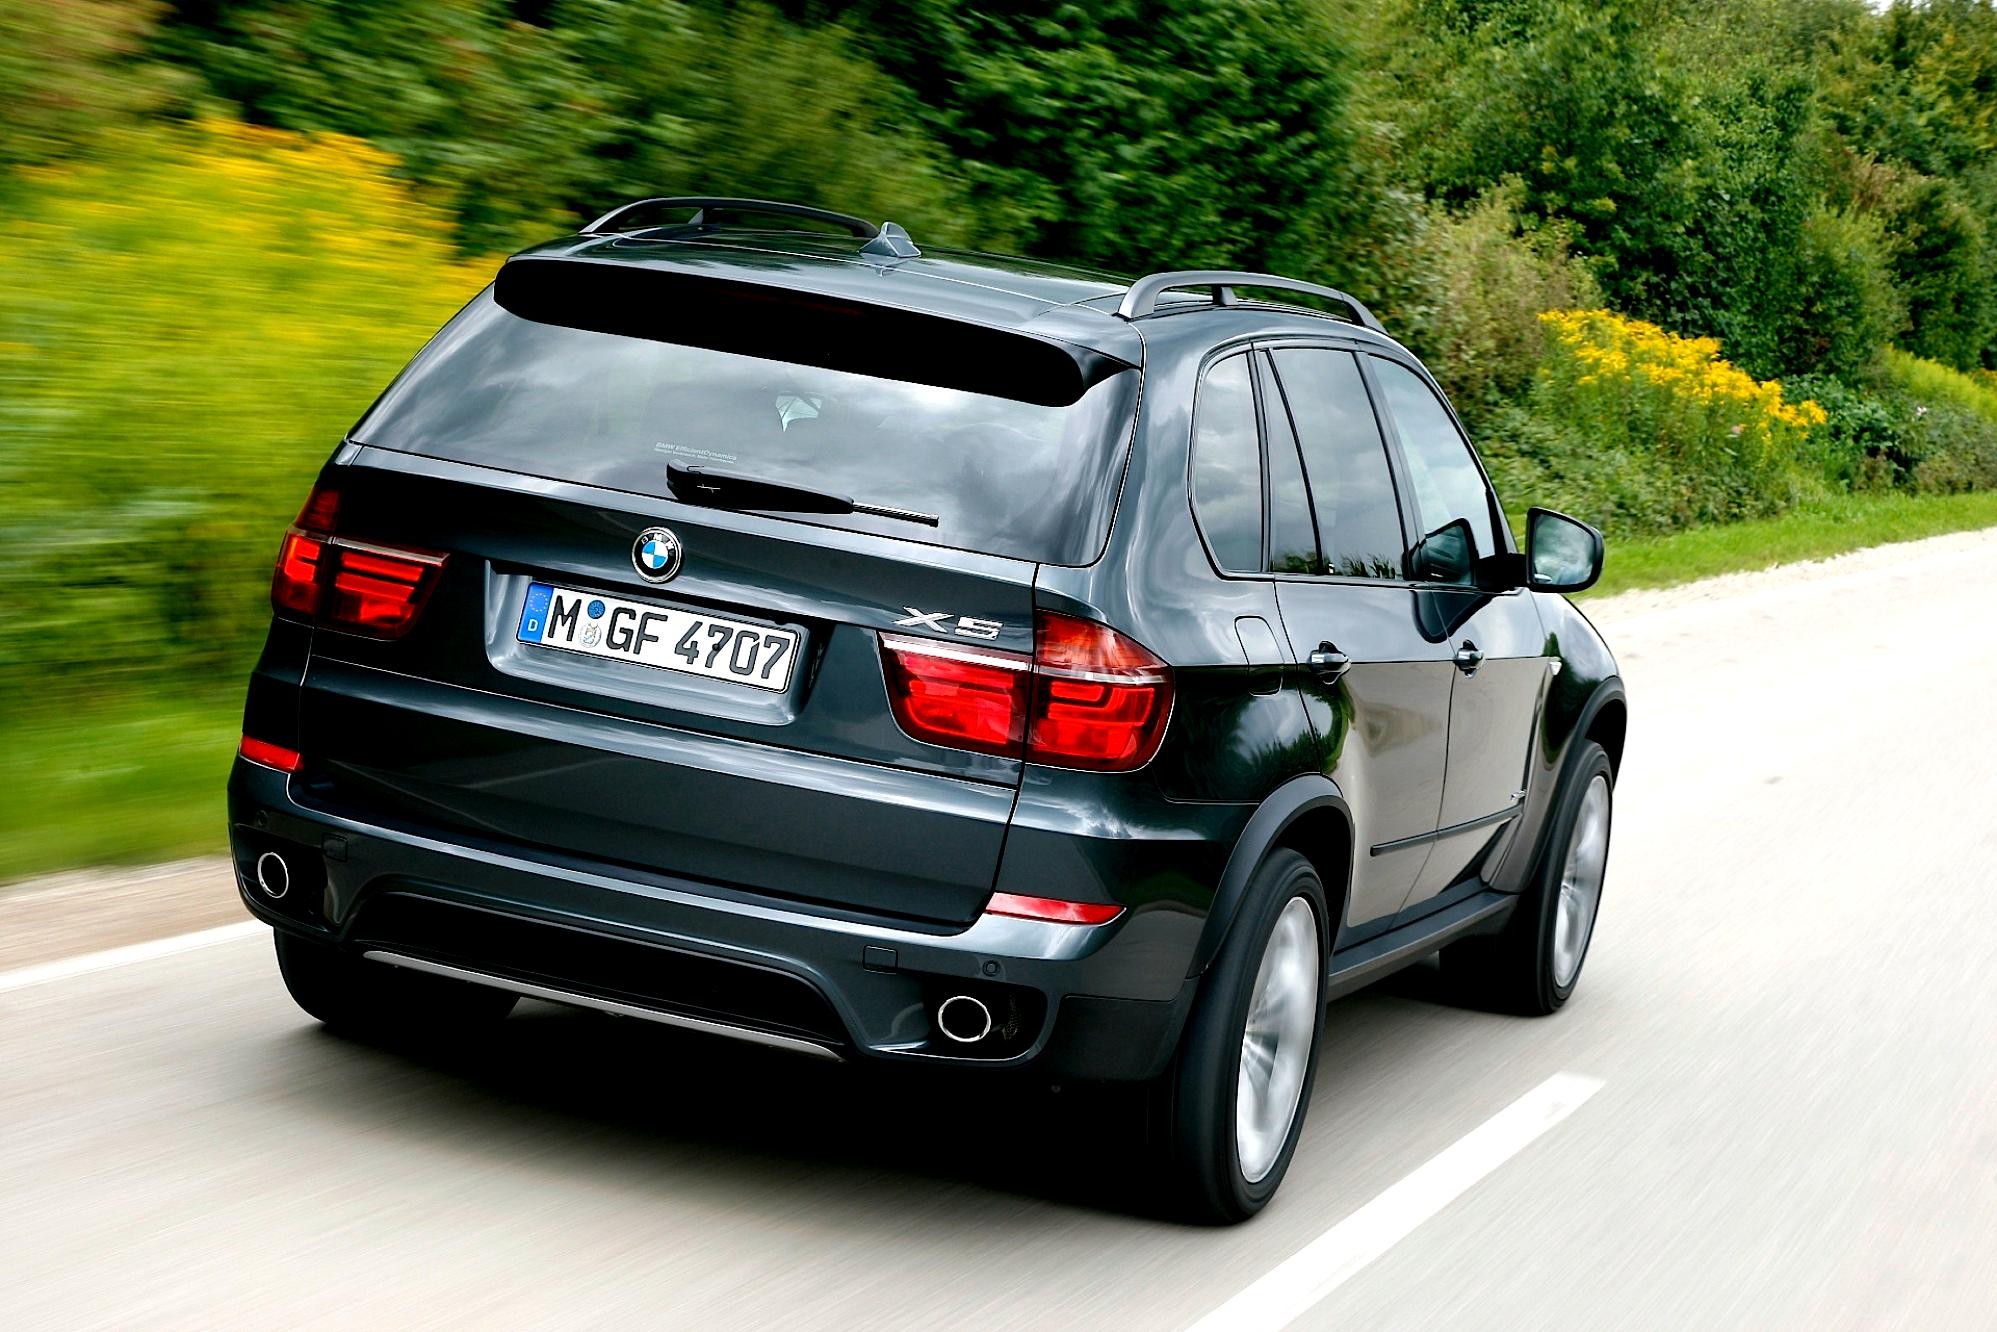 Bmw X5 E70 2010 Photos 100 On Motoimgcom